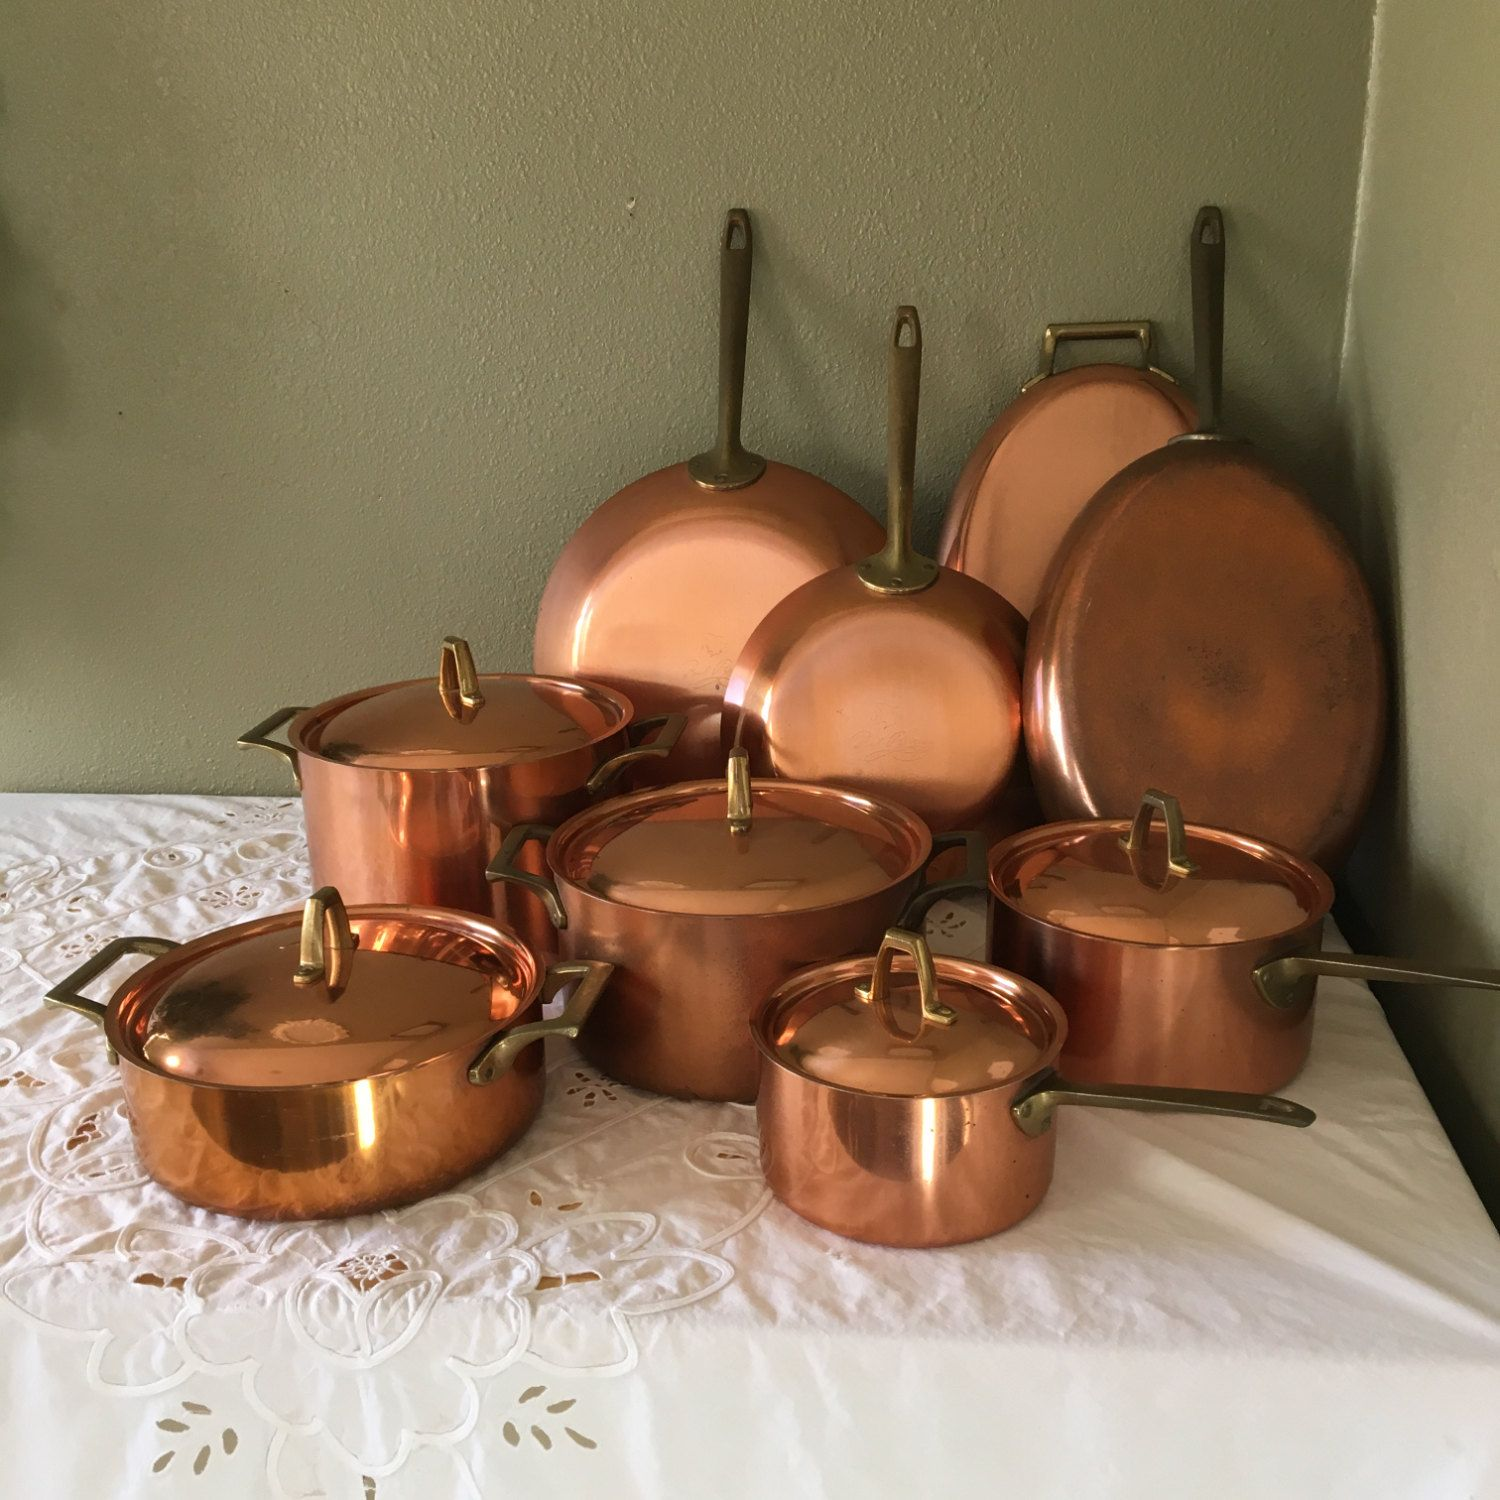 14 Piece Paul Revere Solid Copper Pots And Pans Set 1801 Limited Edition Collection Revere Ware 1970 39 S Vin Pots And Pans Sets Copper Pots Pots And Pans